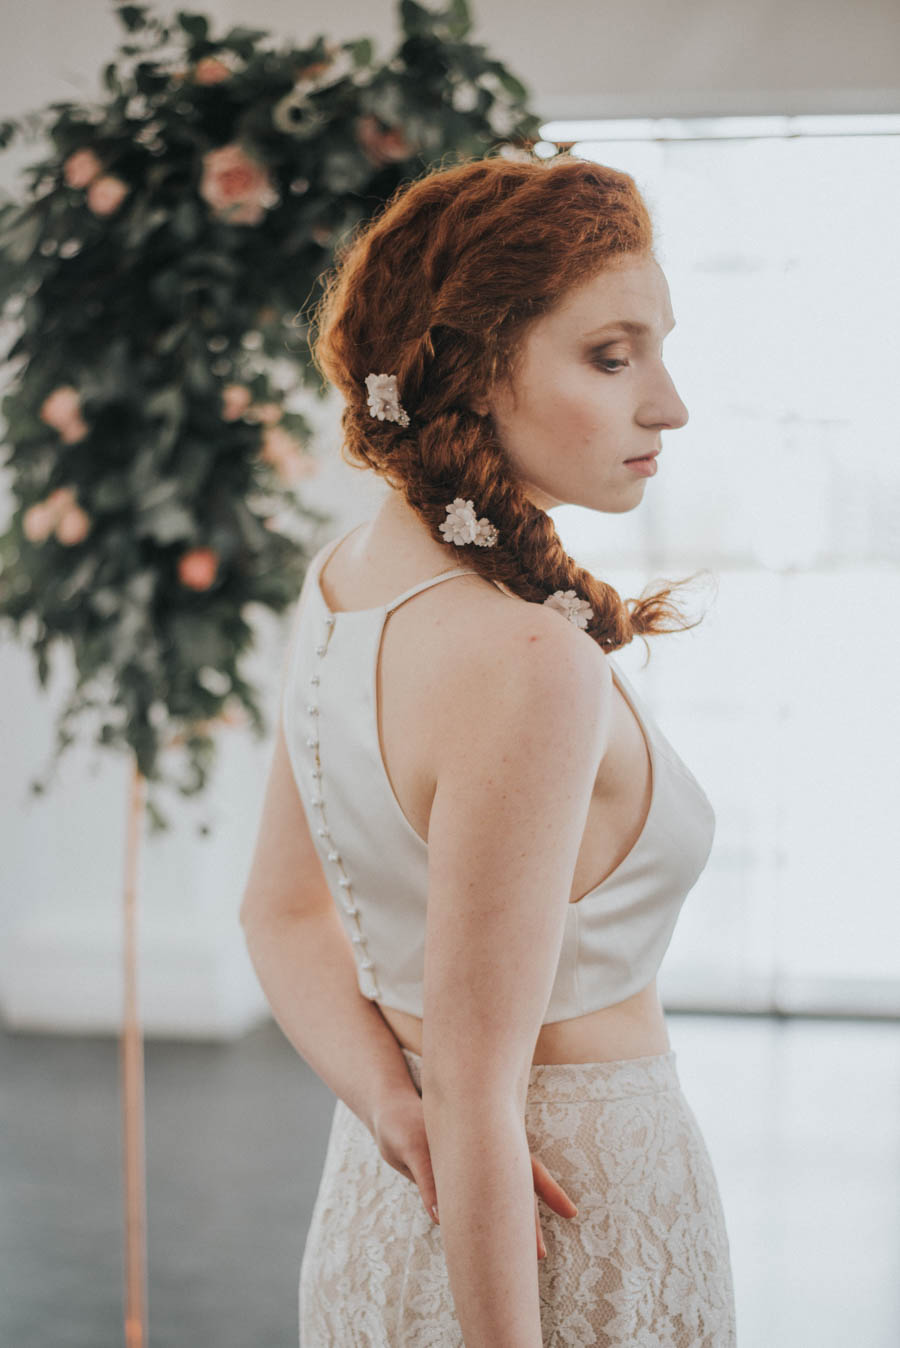 Industrial, Crystal Chic Styled Bridal Shoot: Cool Copper & Romantic Rose Quartz!